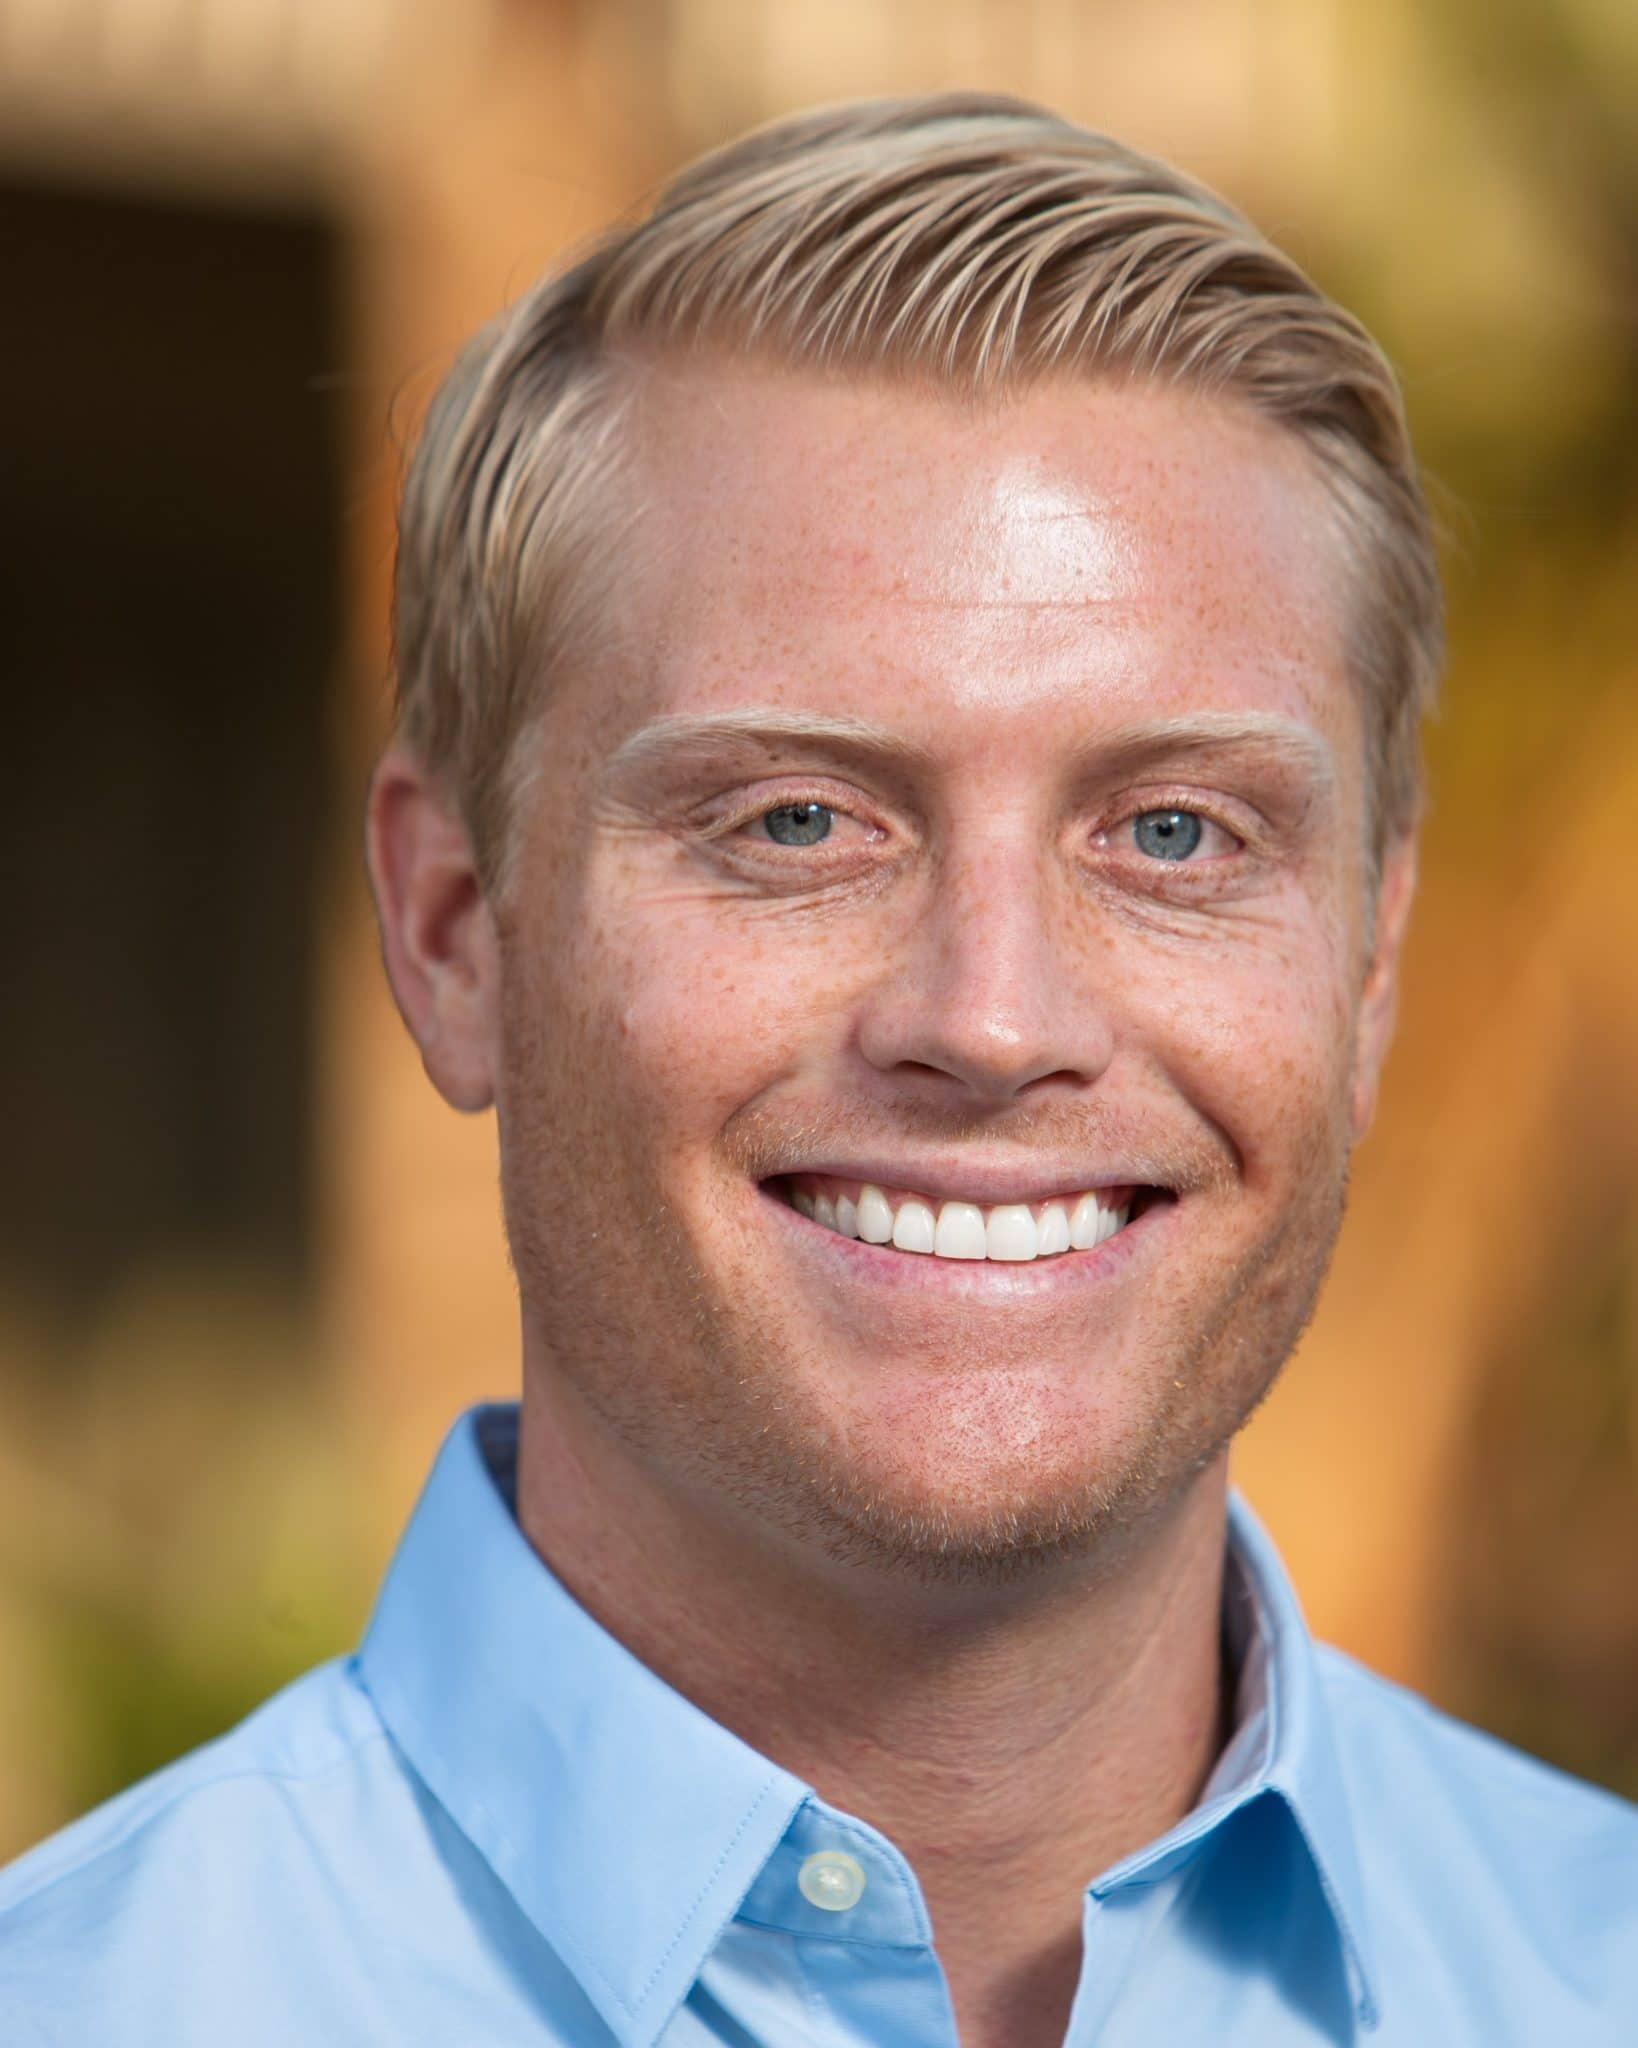 Bryson Greaves, MFT Intern, New Growth Counseling, Carlsbad CA